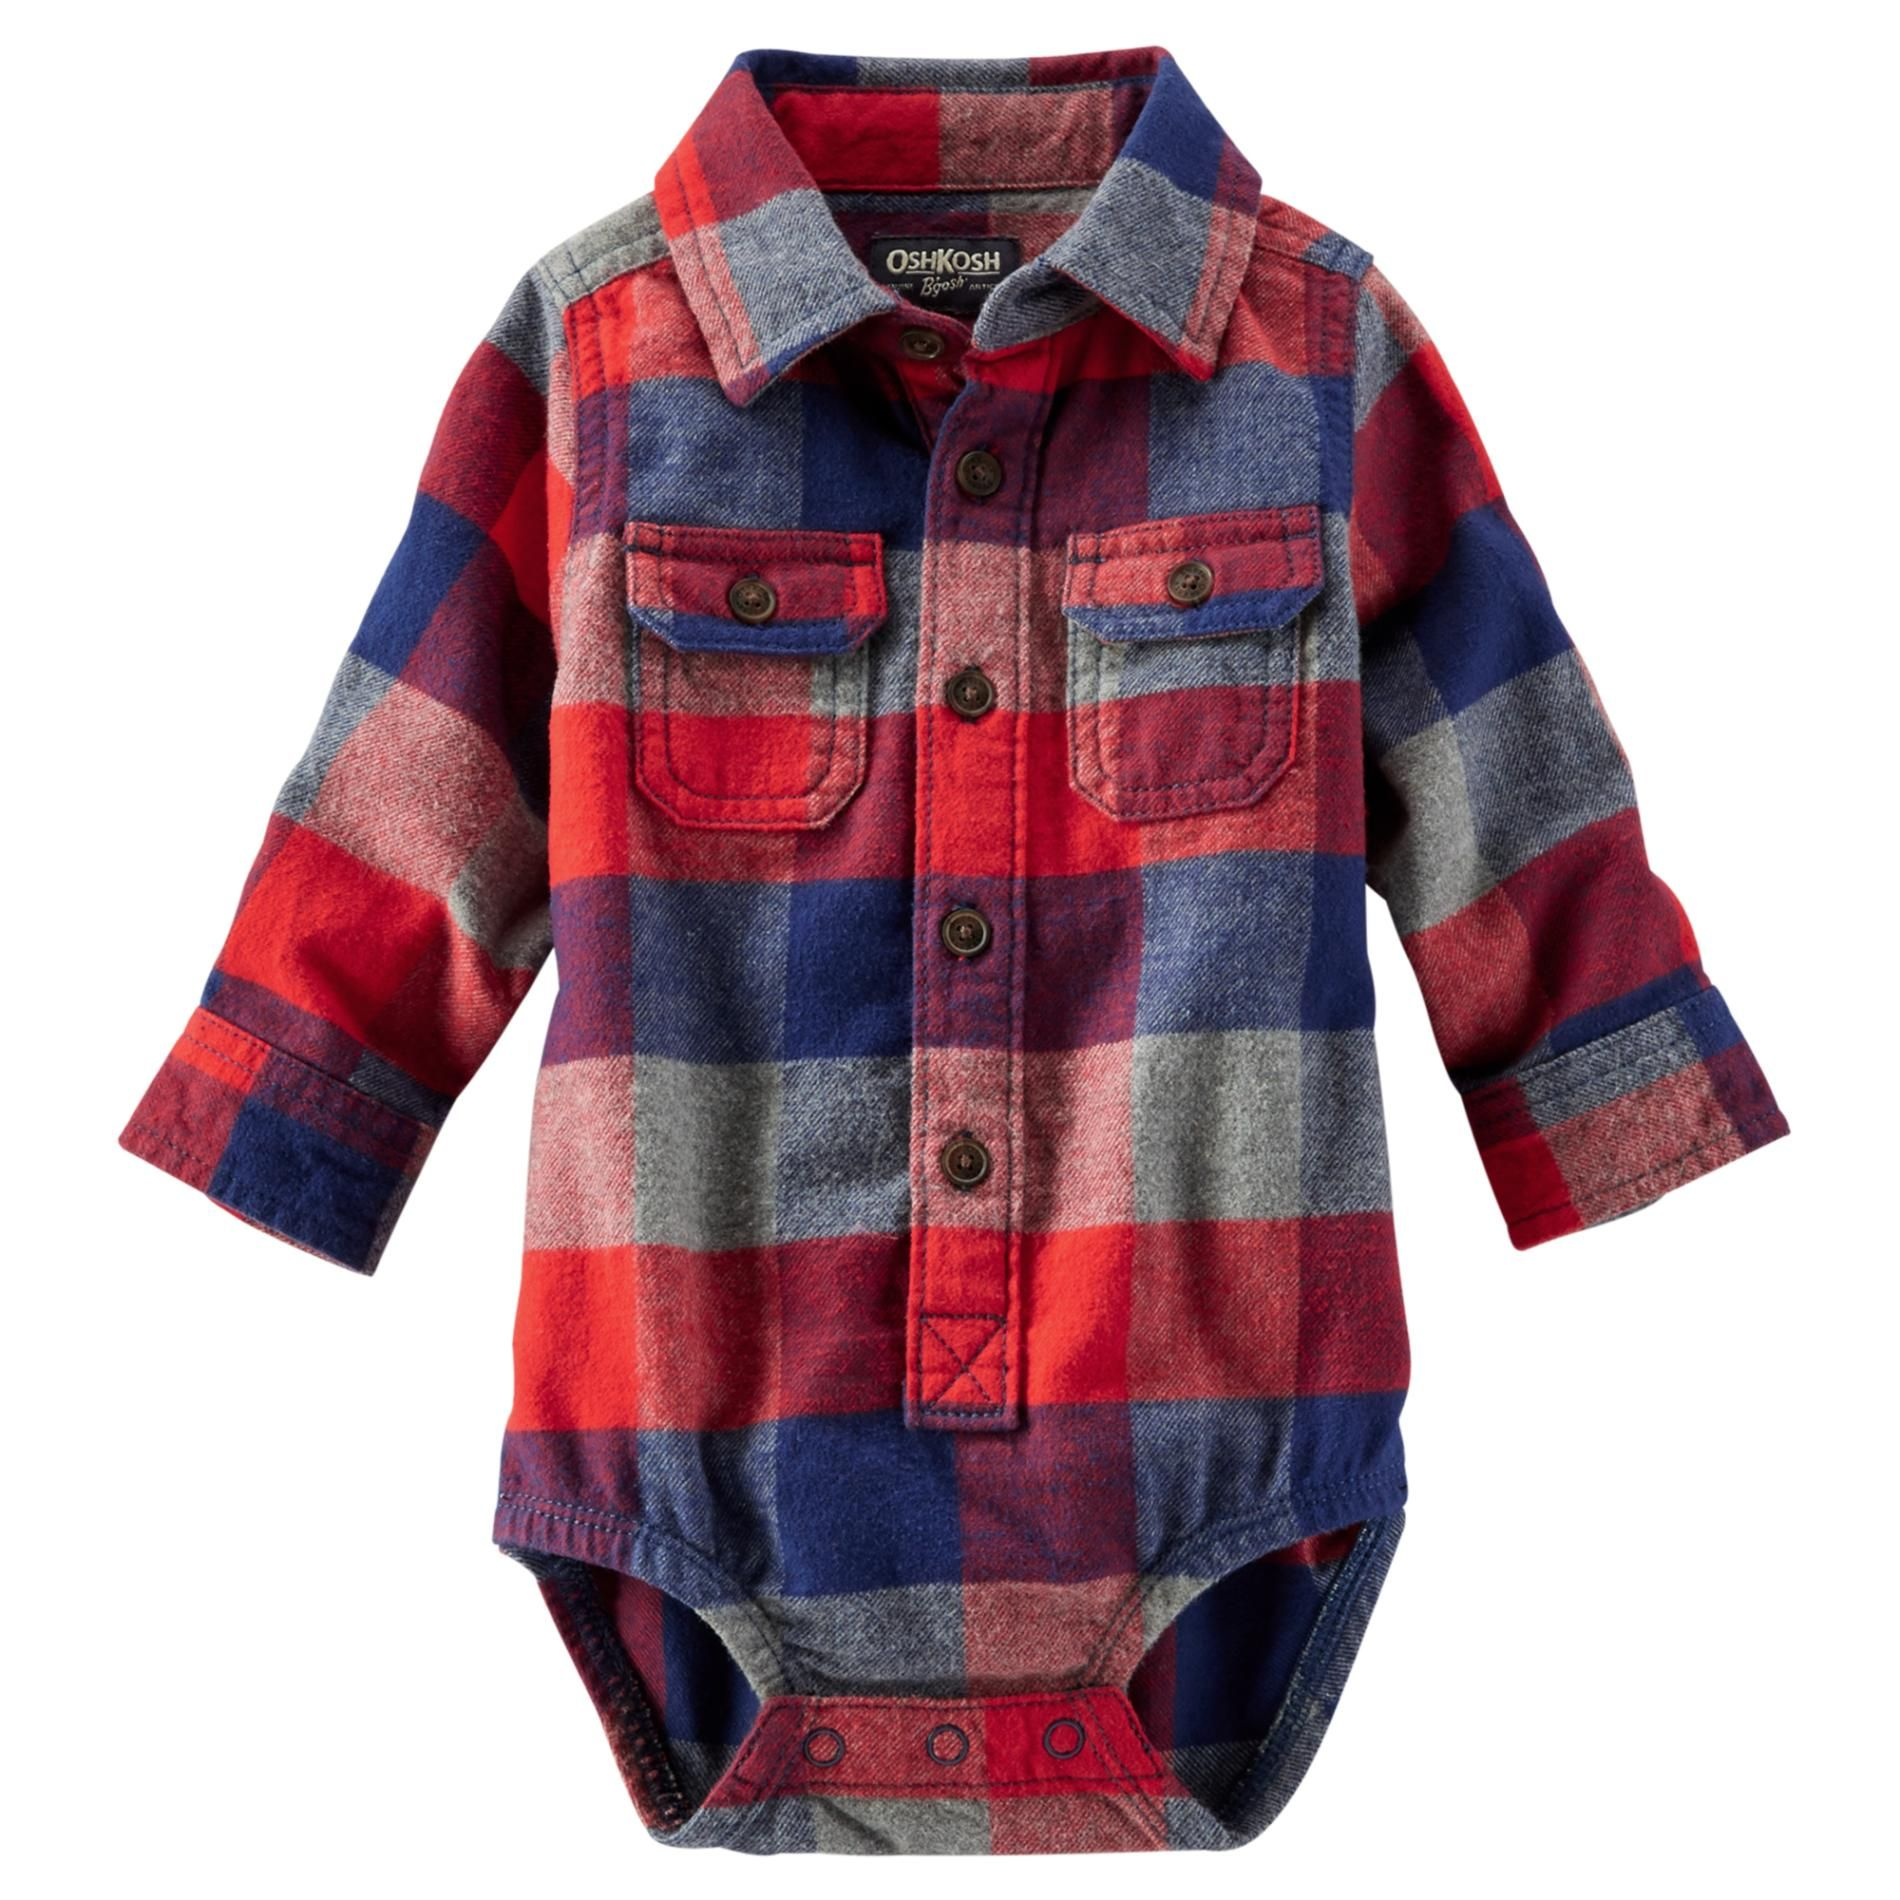 Make Fall And Winter Dressing Easy With This Newborn And Infant